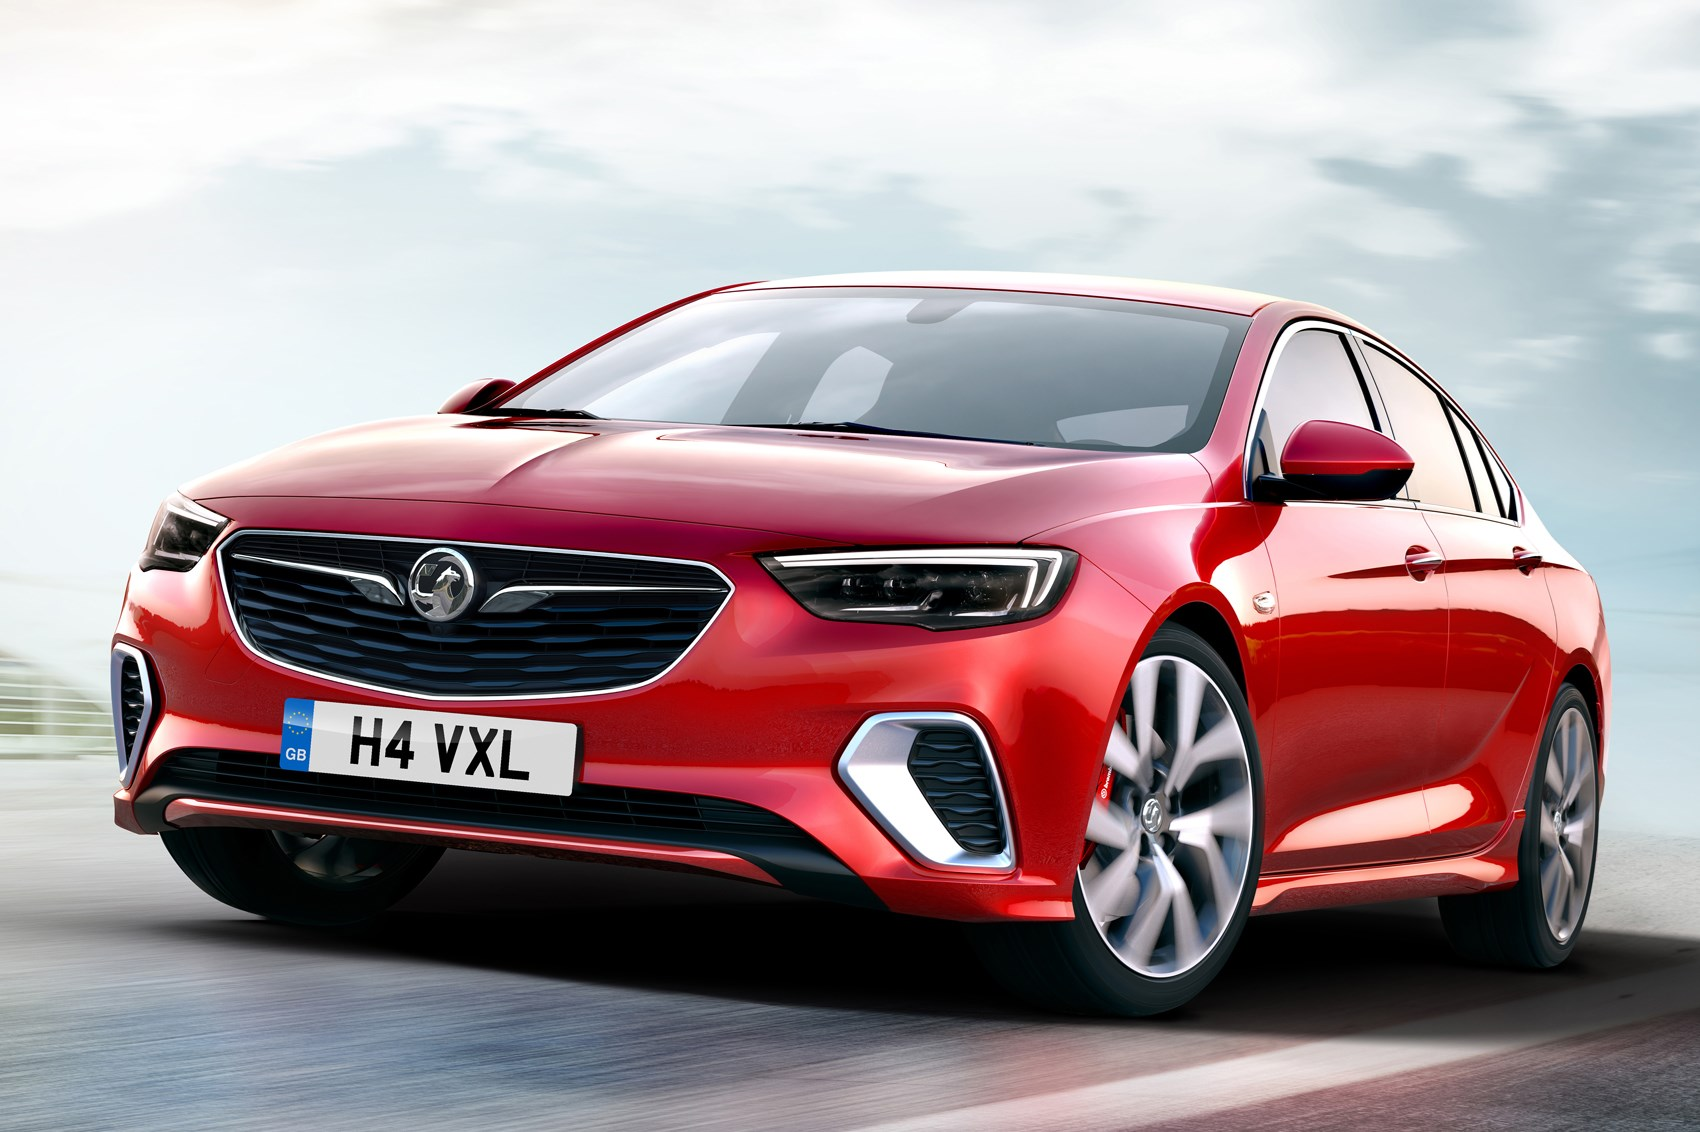 Vauxhall reveals new Insignia GSI ahead of Frankfurt debut